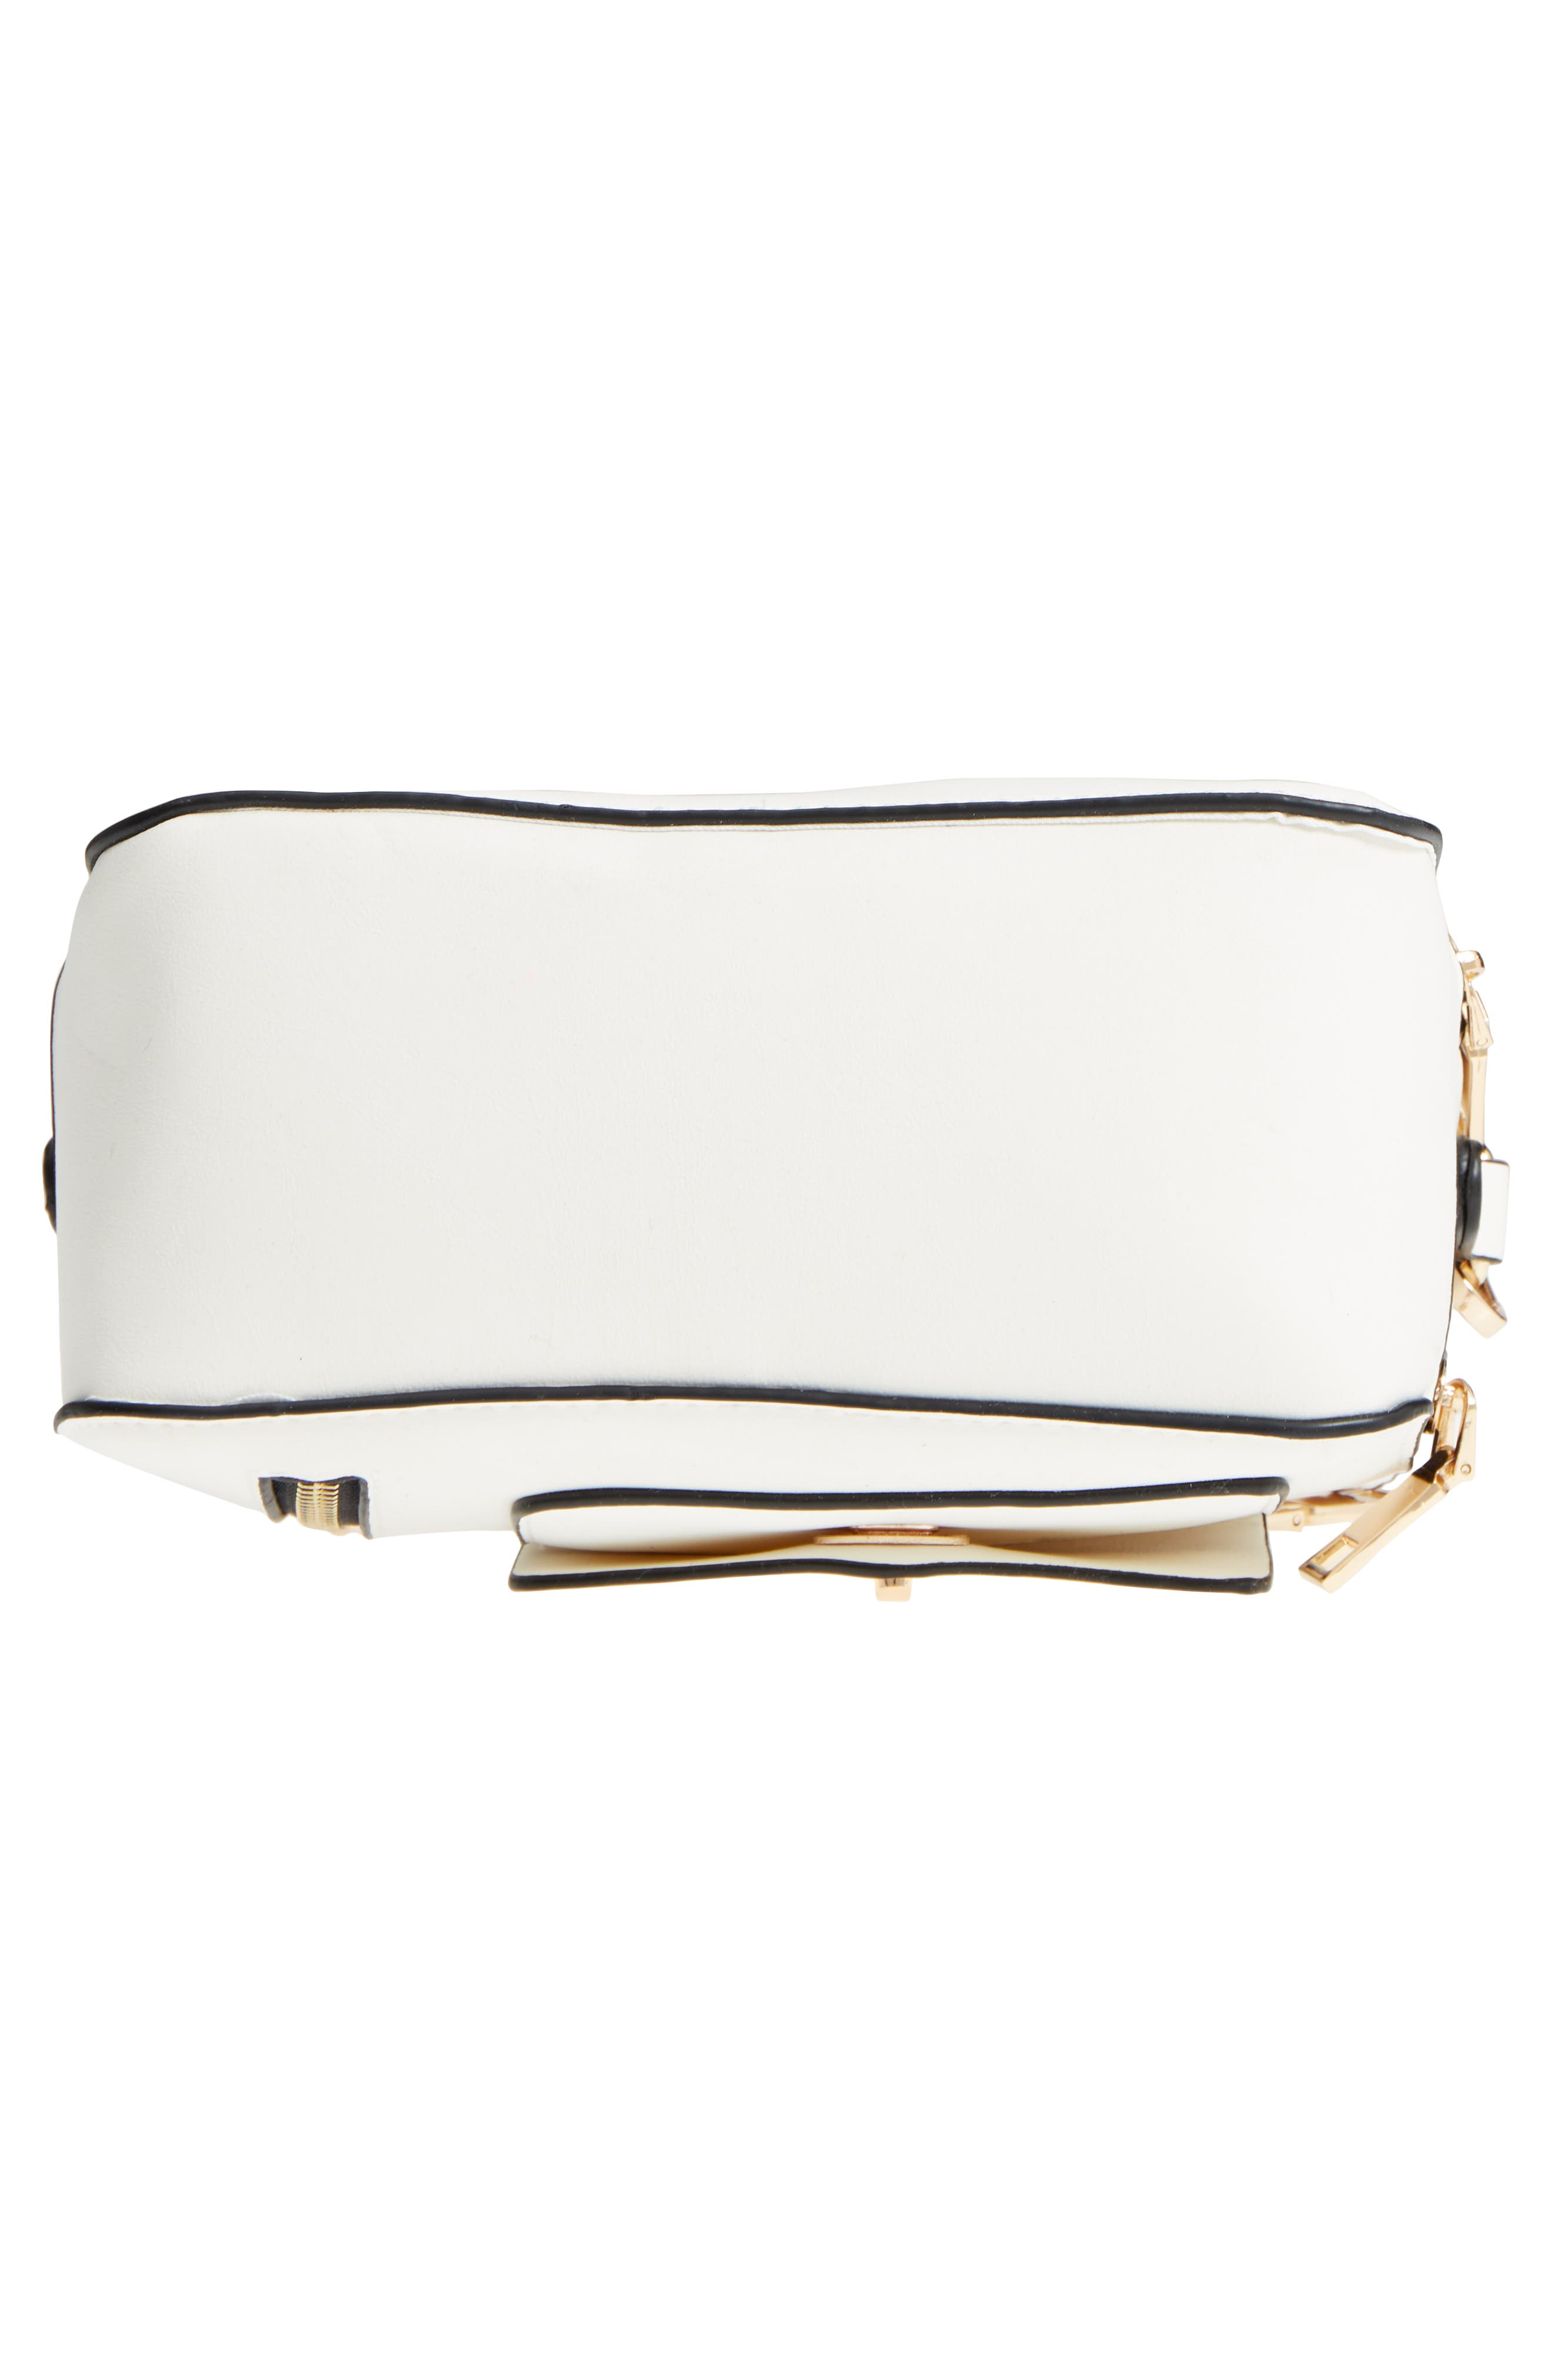 Multi-Zip Faux Leather Boxy Crossbody Bag,                             Alternate thumbnail 6, color,                             White